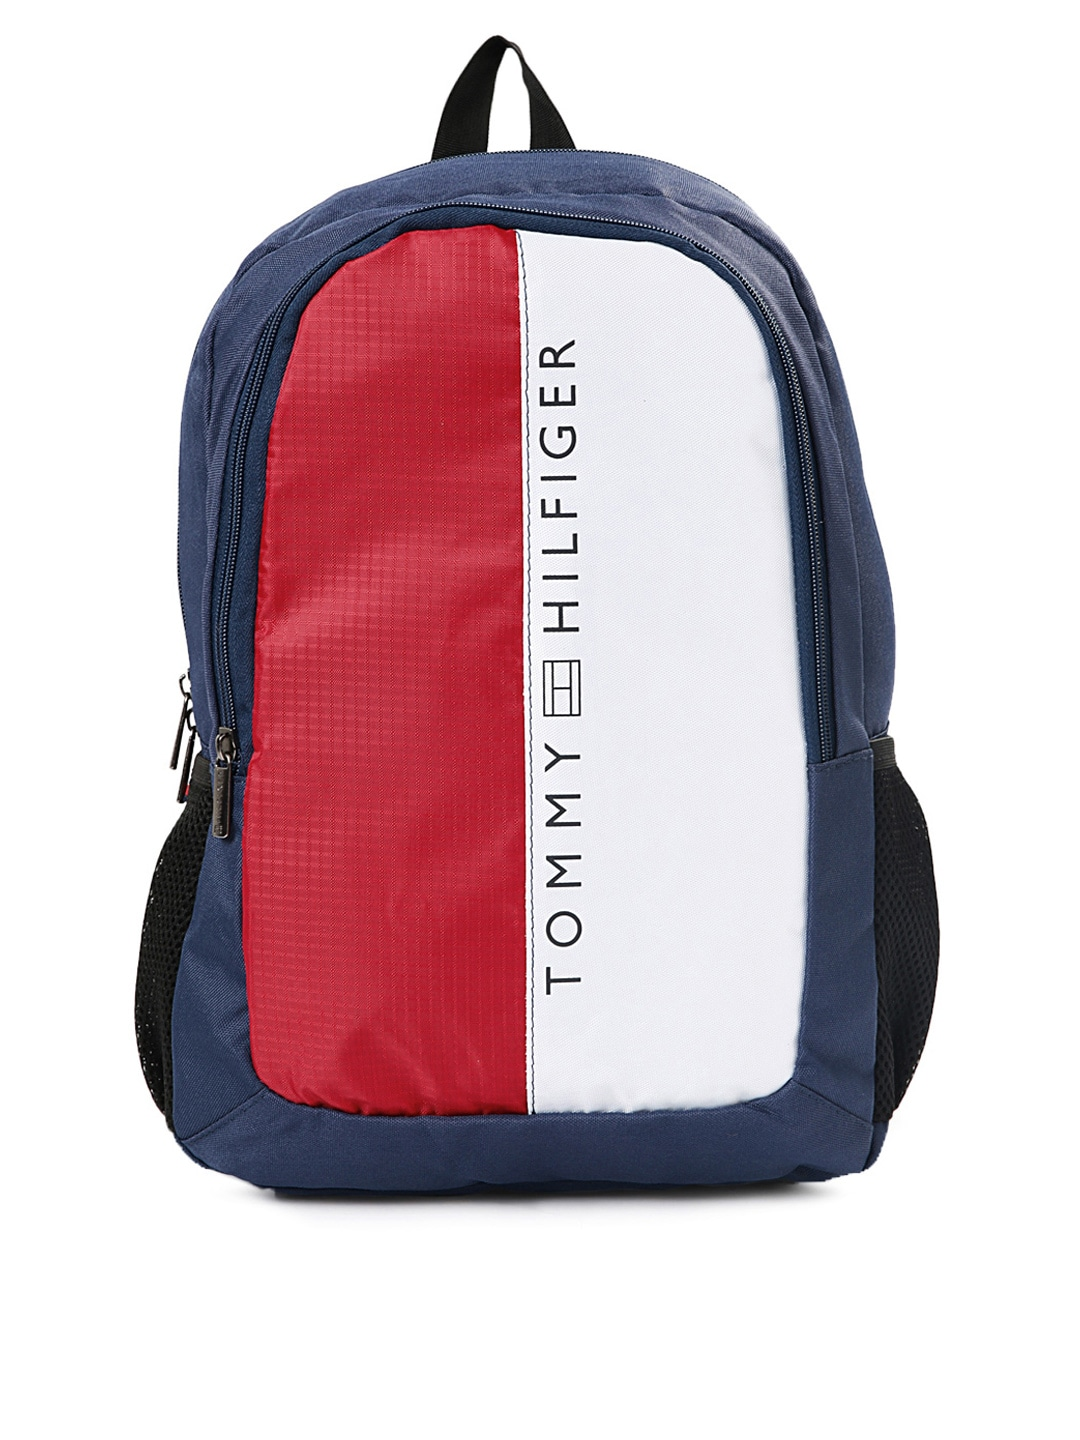 Tommy hilfiger 8903496078602 Unisex Navy And Red Laptop Backpack- Price in  India f2a7c7c419943